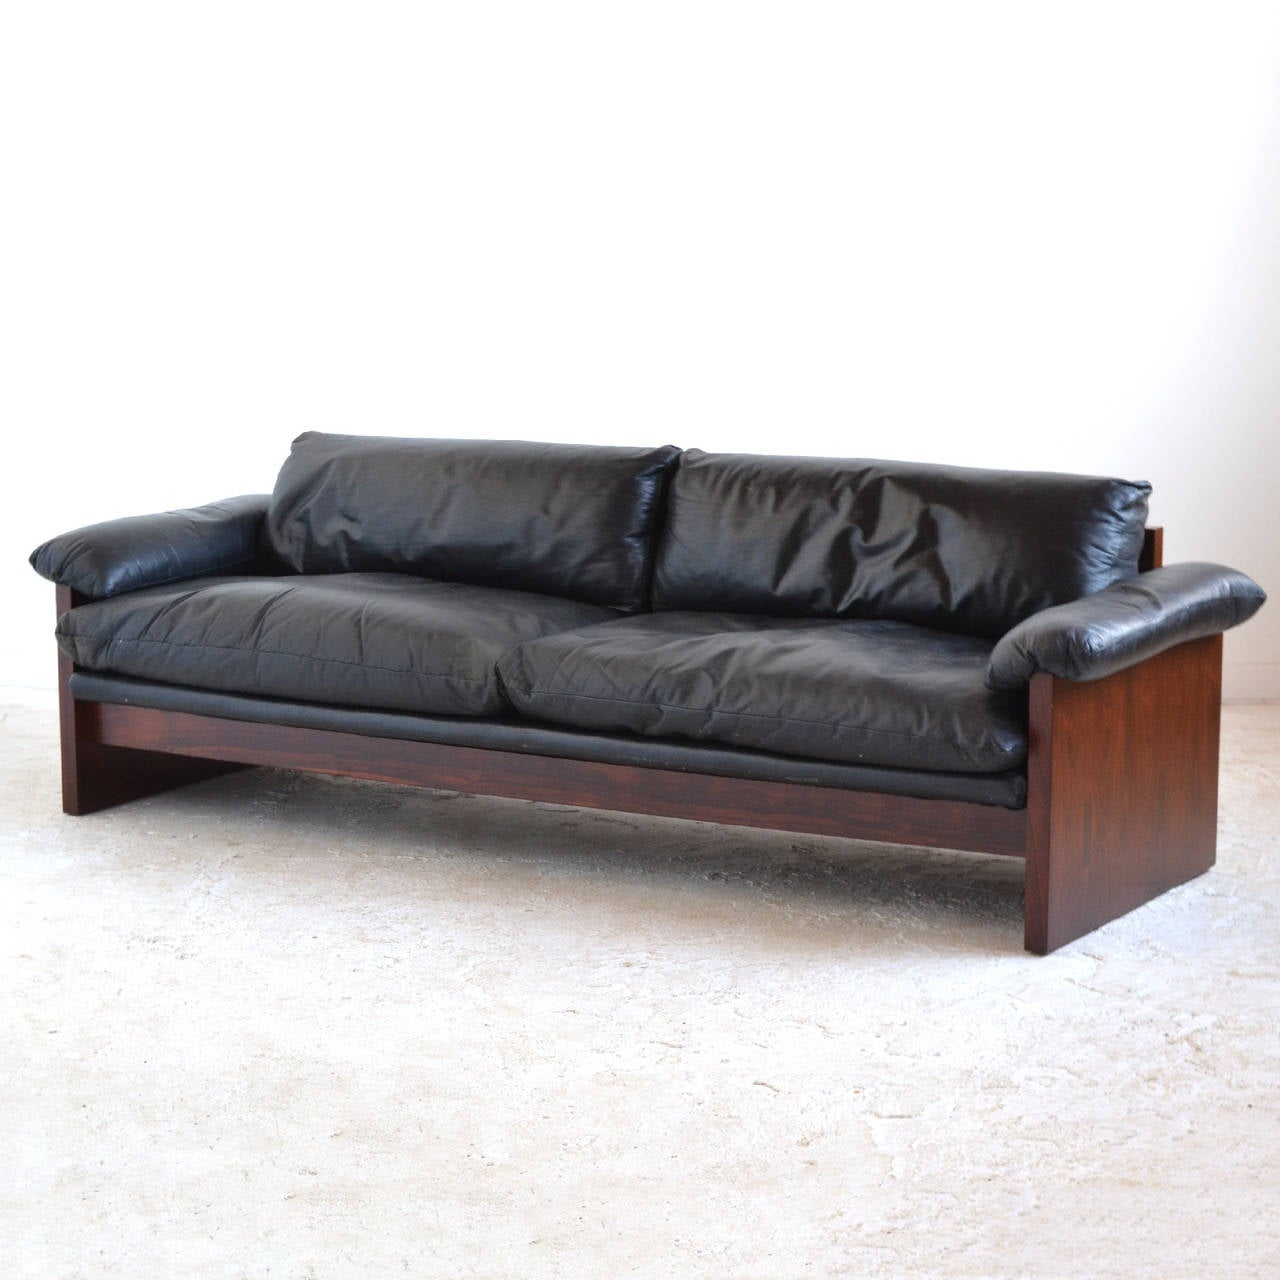 Rosewood Sofa With Down Filled Leather Cushions At 1stdibs